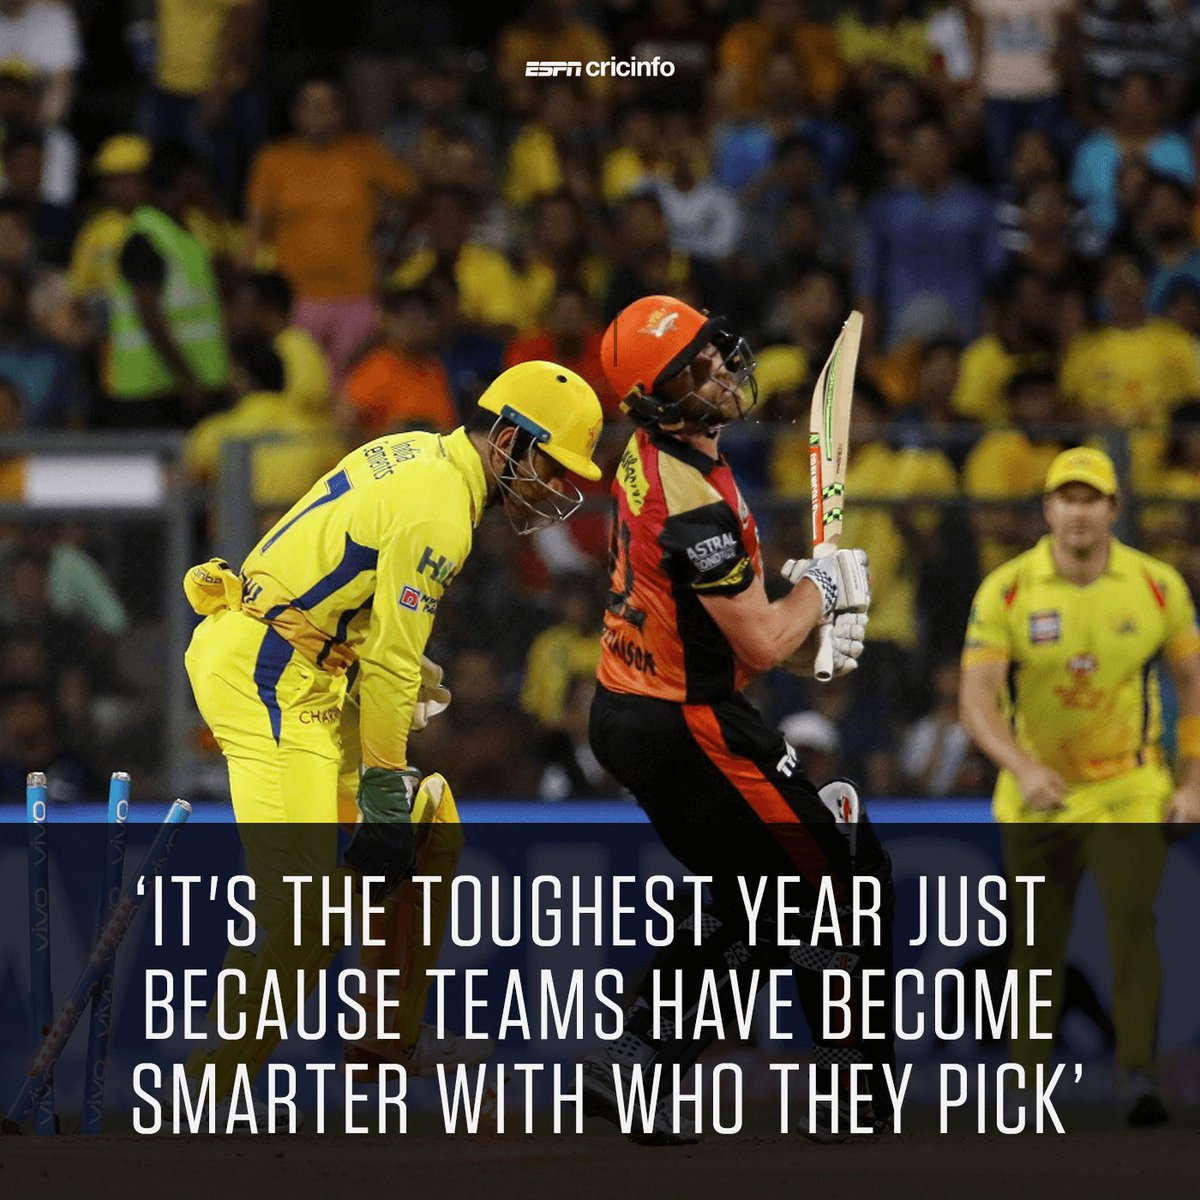 Do you think IPL 2018 was the most closely-contested season?  https://t.co/RqURQRpf74 https://t.co/3HfSBt5ucc